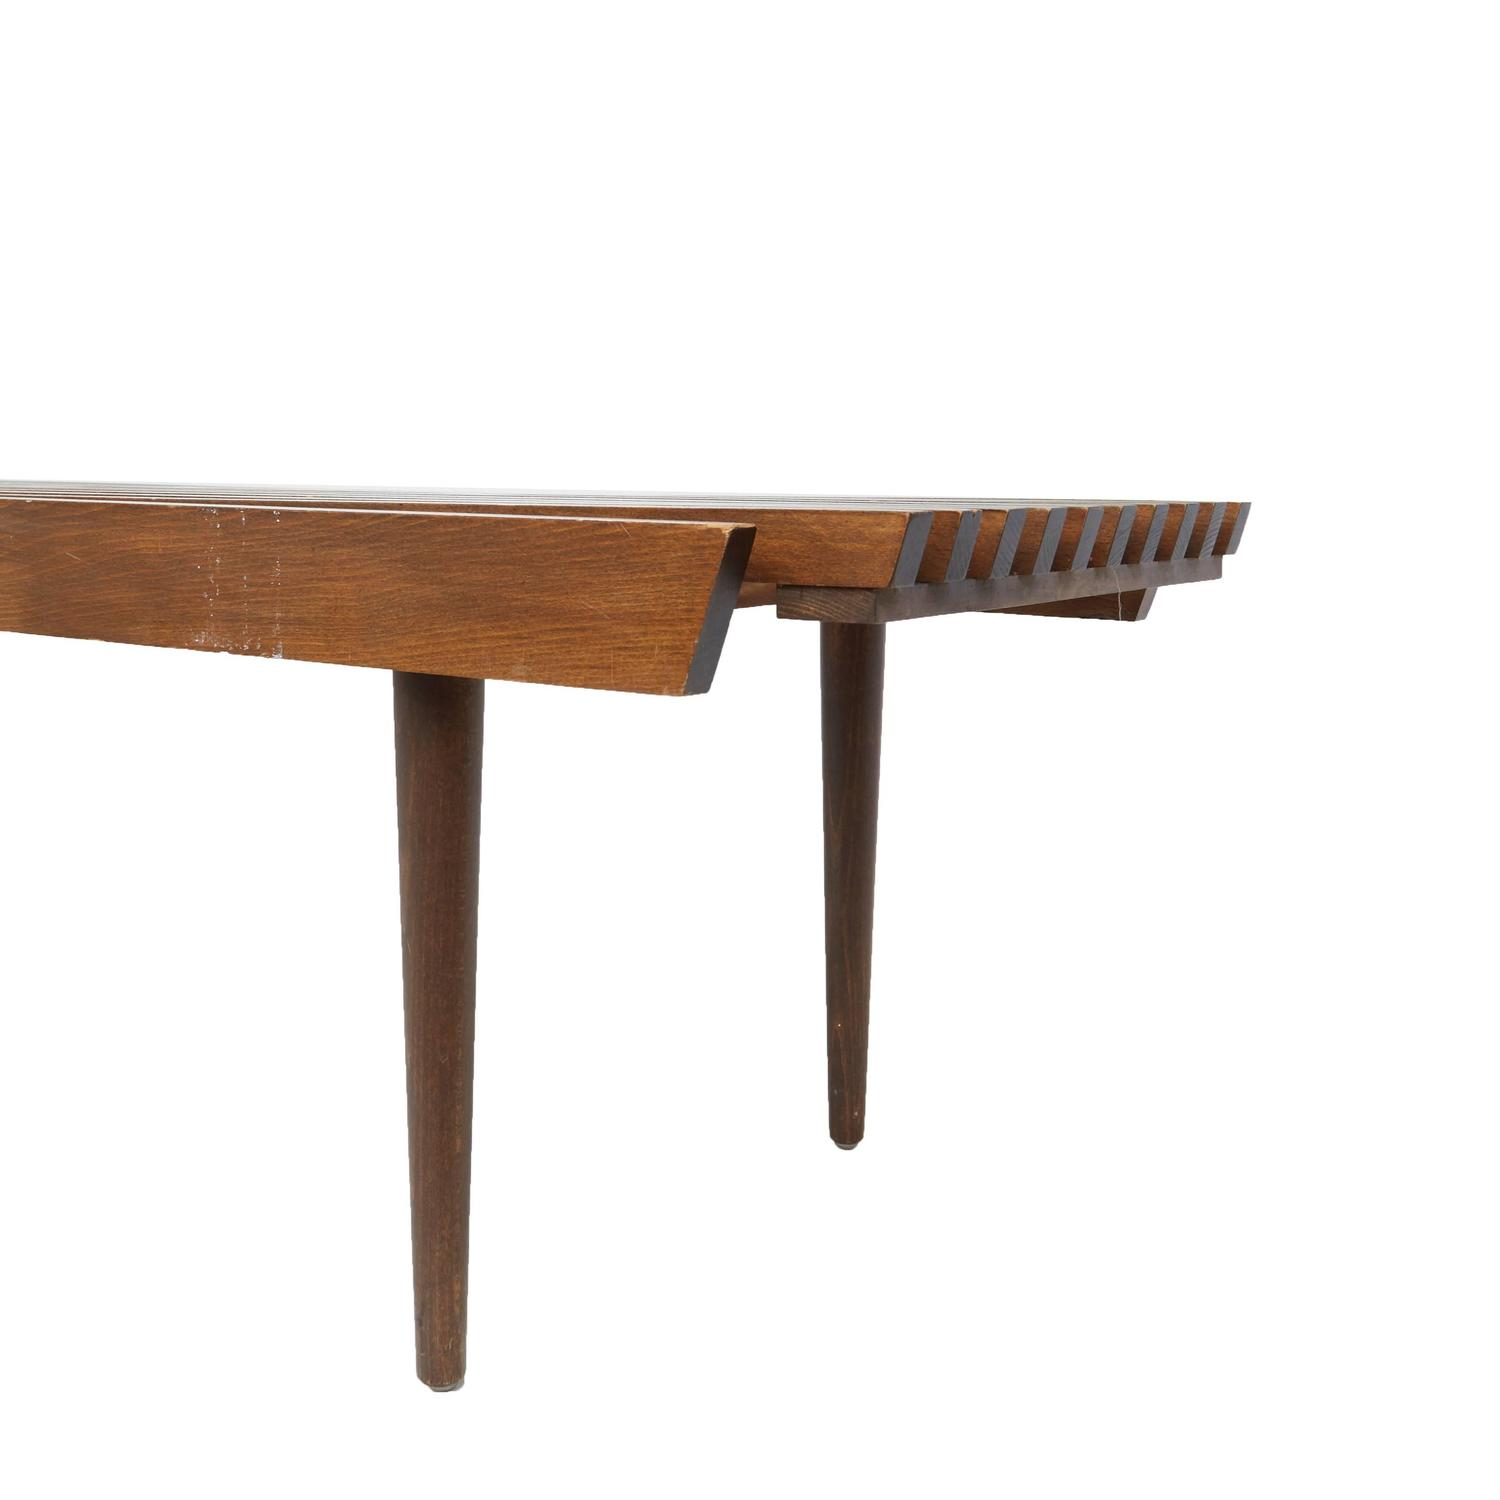 Slatted Wood Bench In The Style Of George Nelson For Herman Miller On Sale At 1stdibs